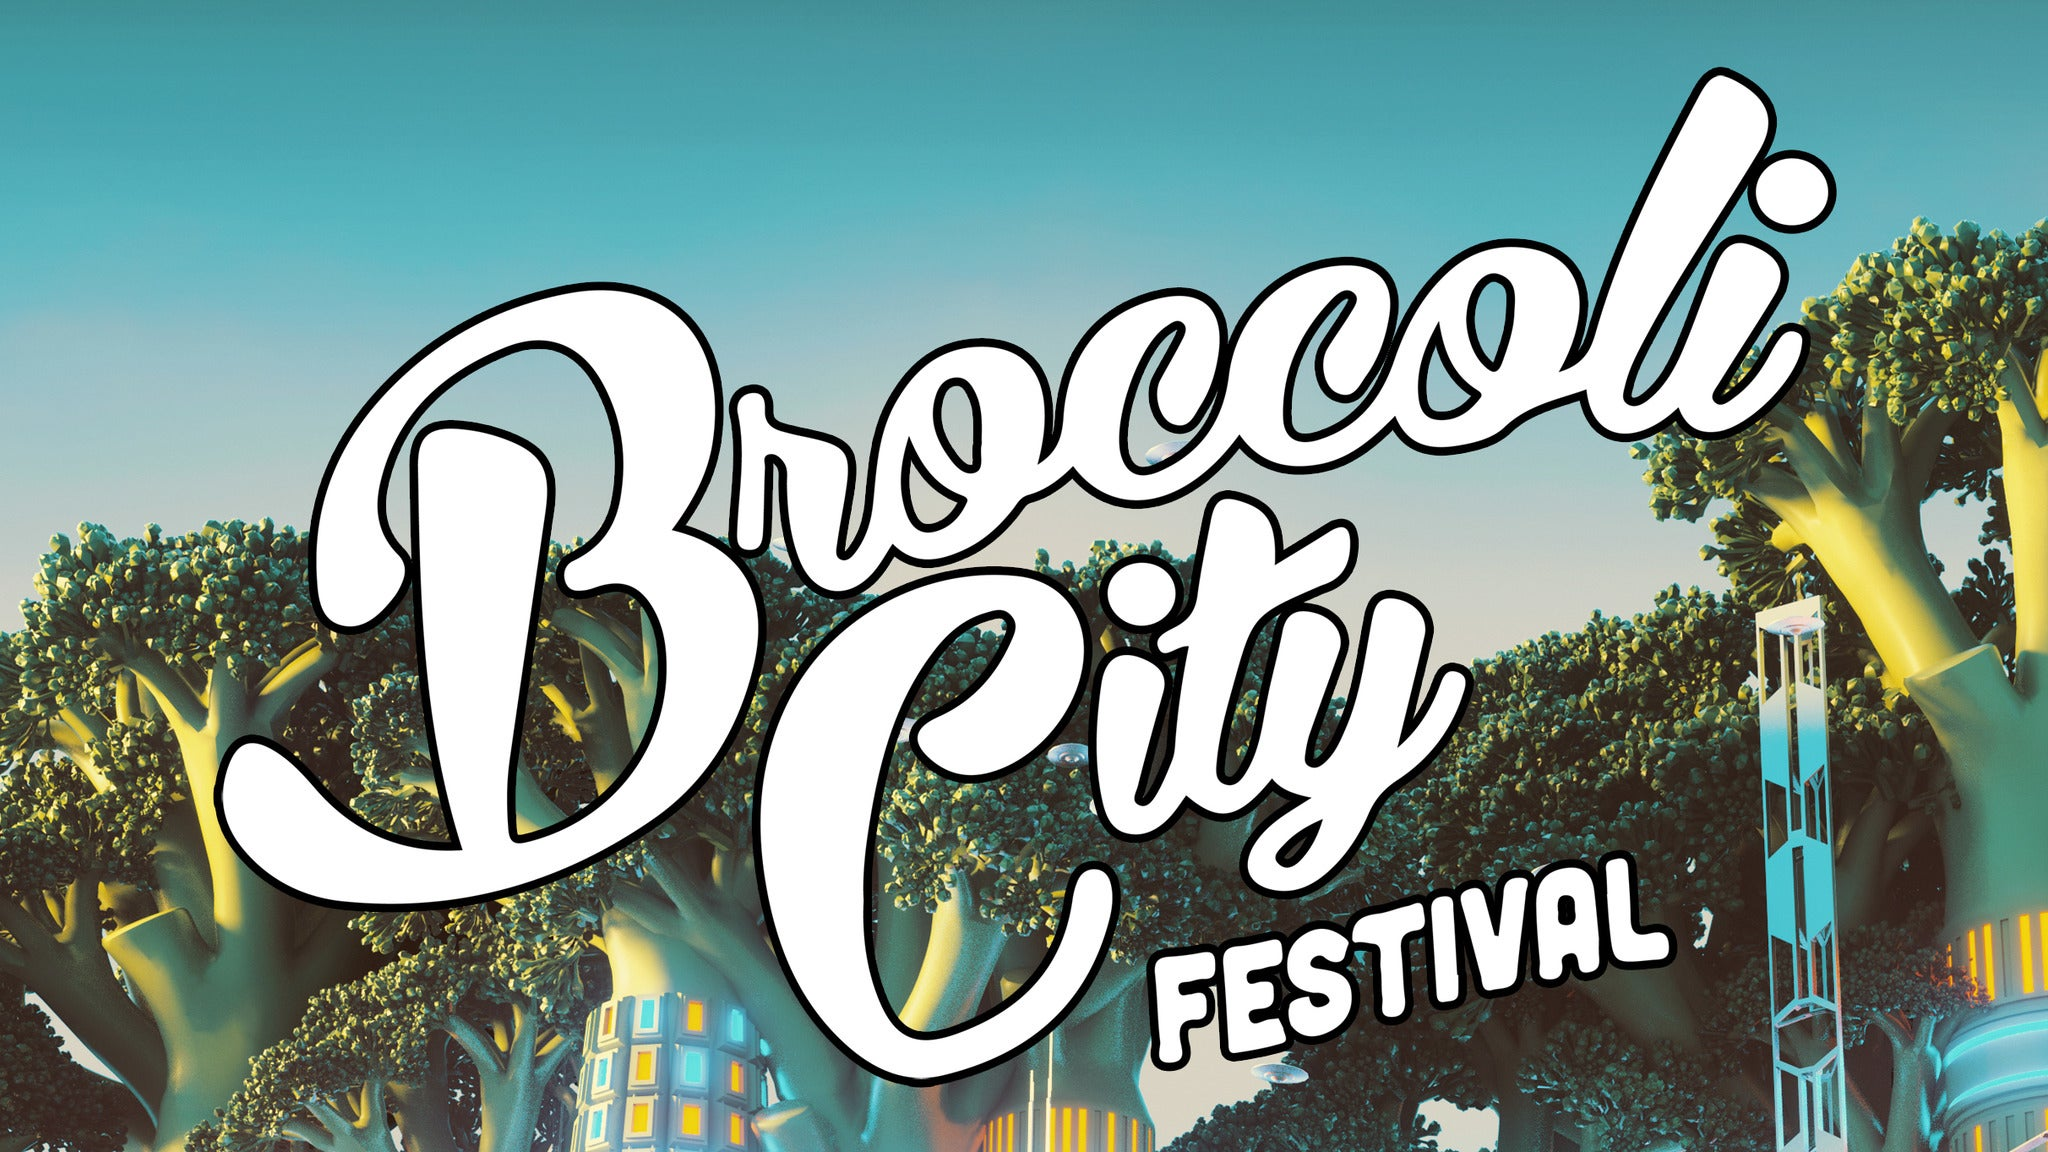 Broccoli City Festival: Migos, Miguel, Cardi B & More